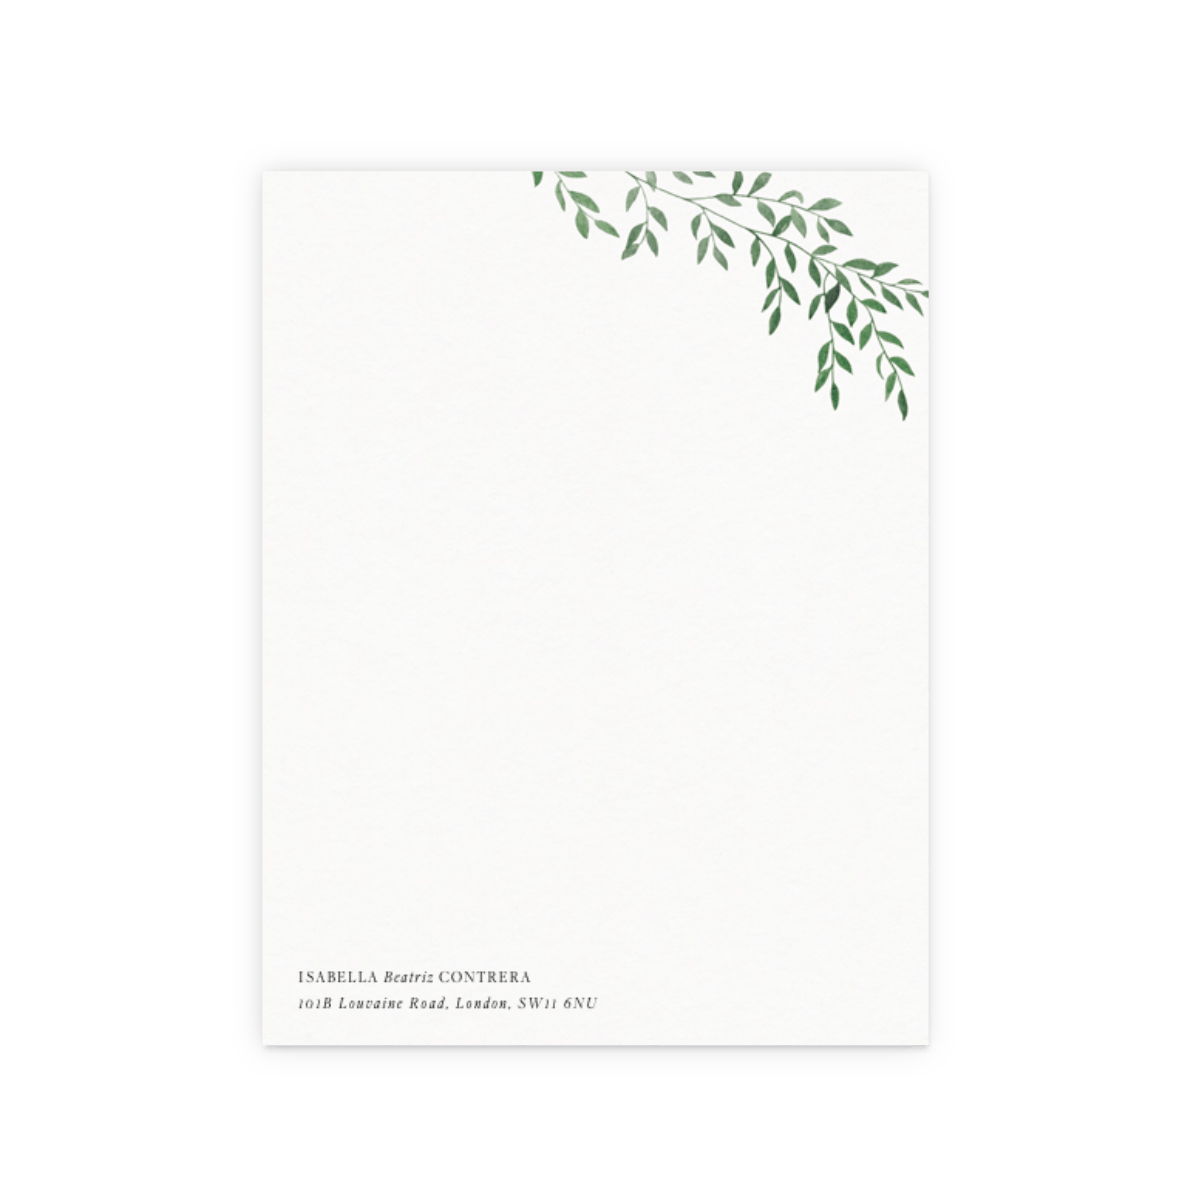 Https%3a%2f%2fwww.papier.com%2fproduct image%2f71395%2f45%2fminimal greenery 16870 vorderseite 1554988754.png?ixlib=rb 1.1